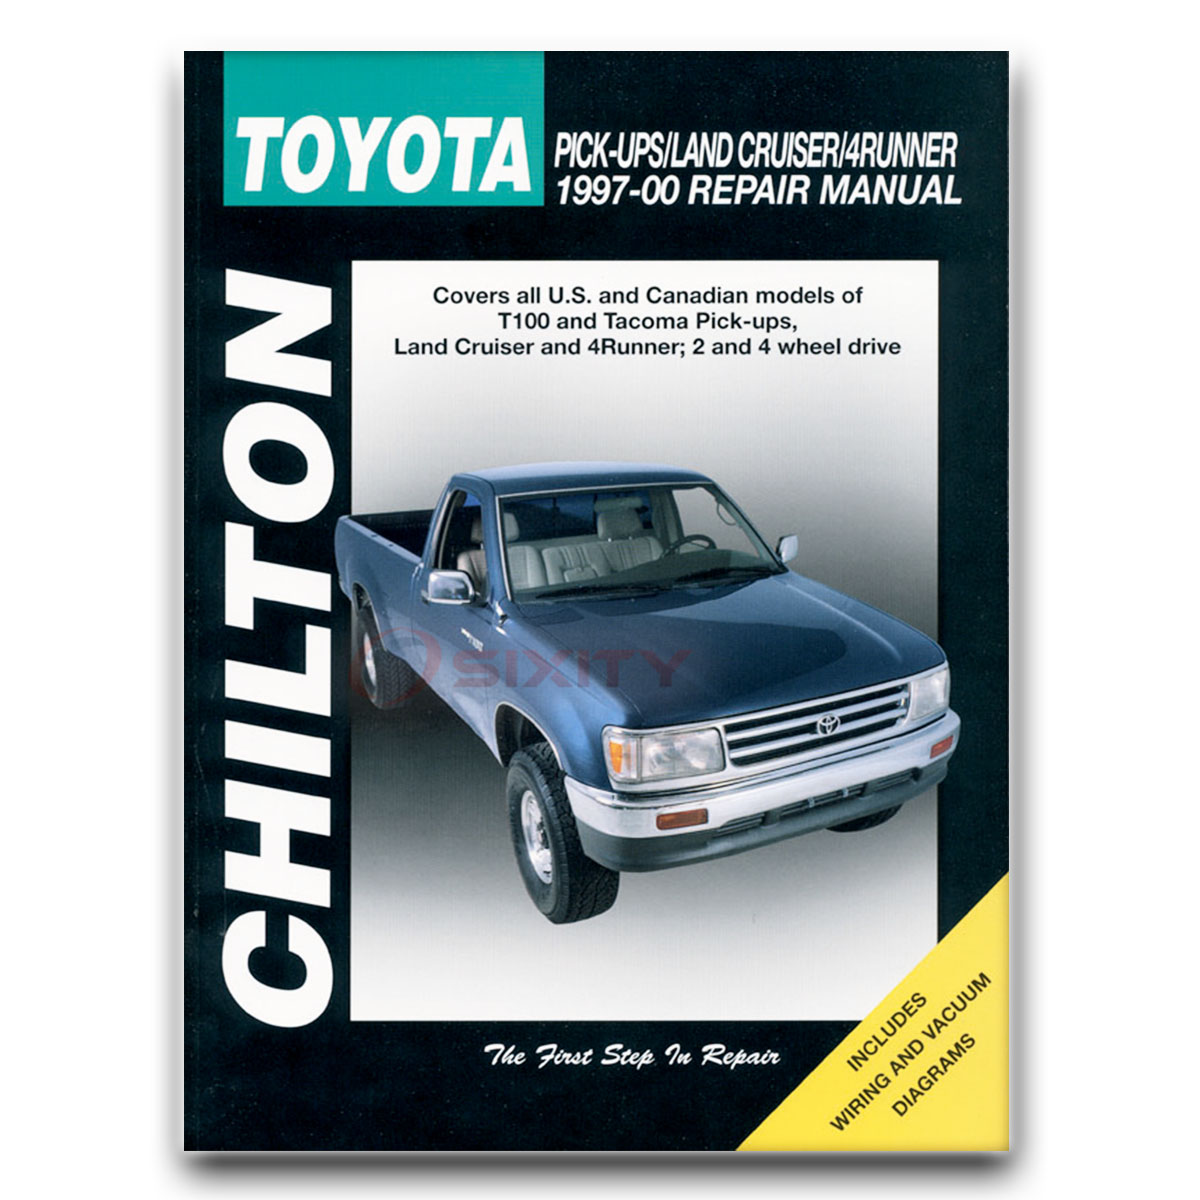 Chilton Repair Manual For 1997-2000 Toyota Tacoma